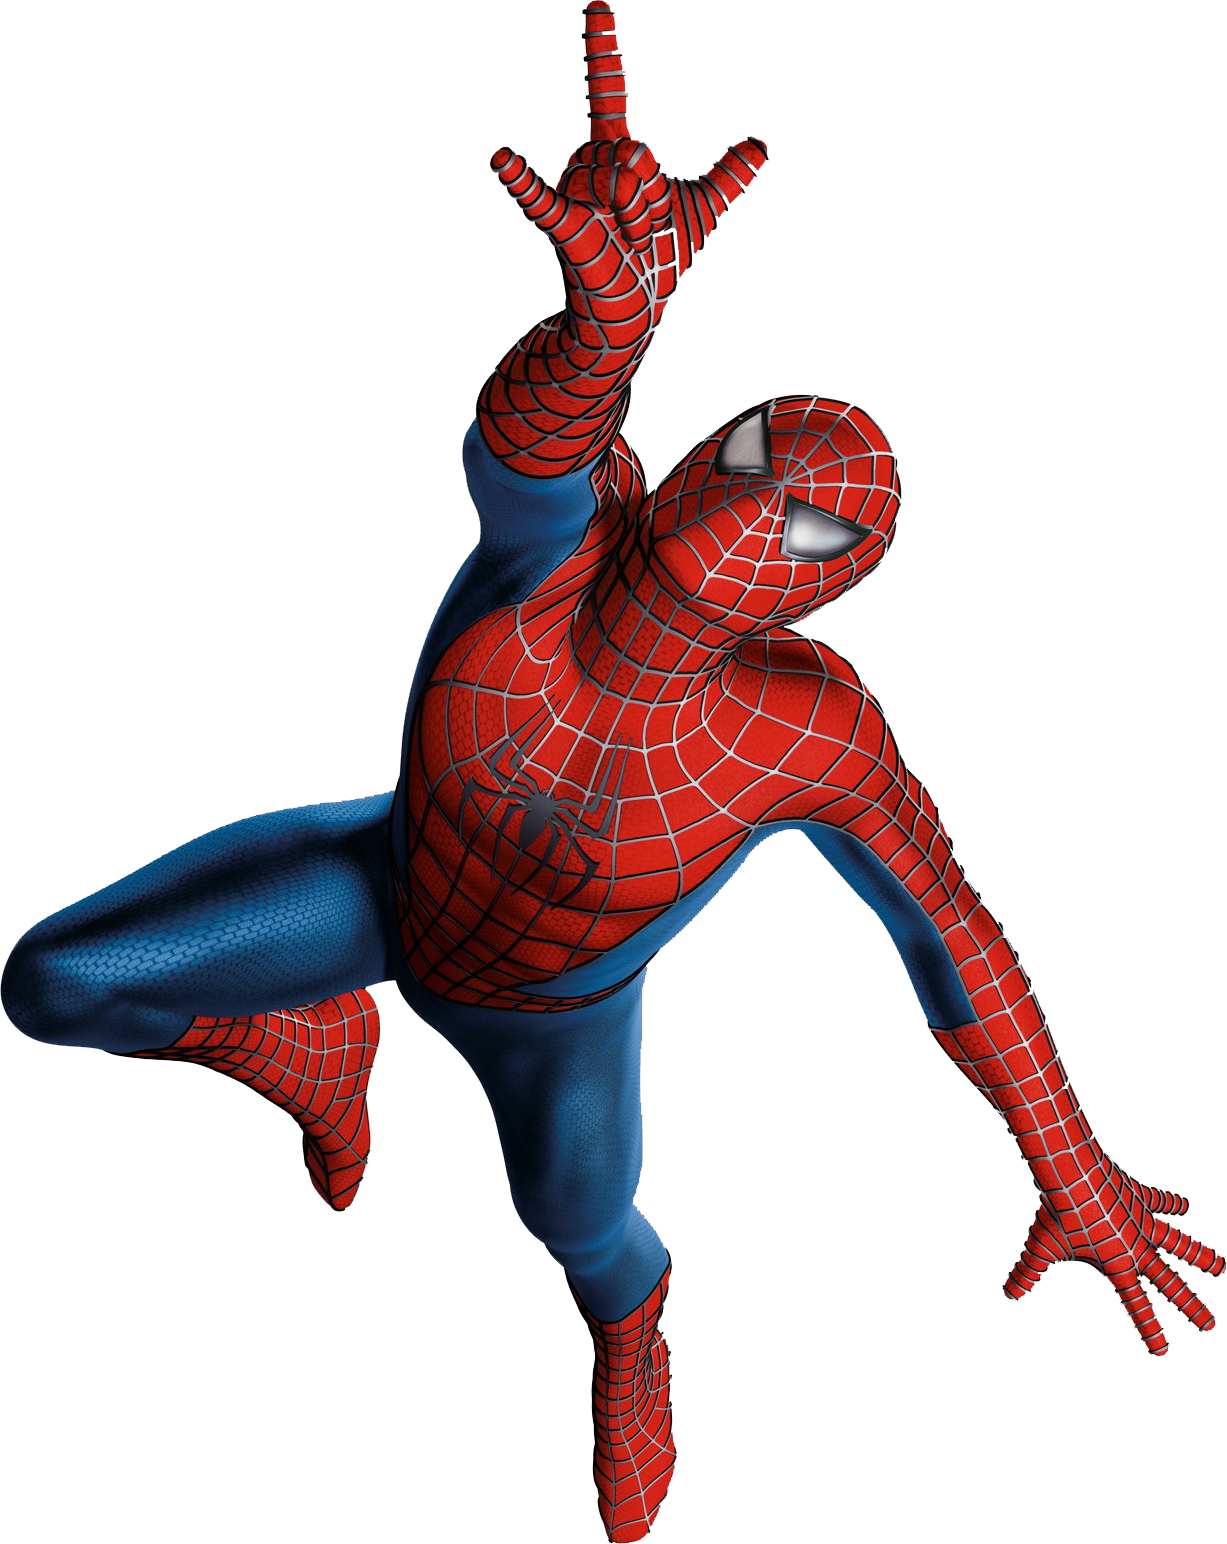 Hand clipart spiderman. Png image purepng free